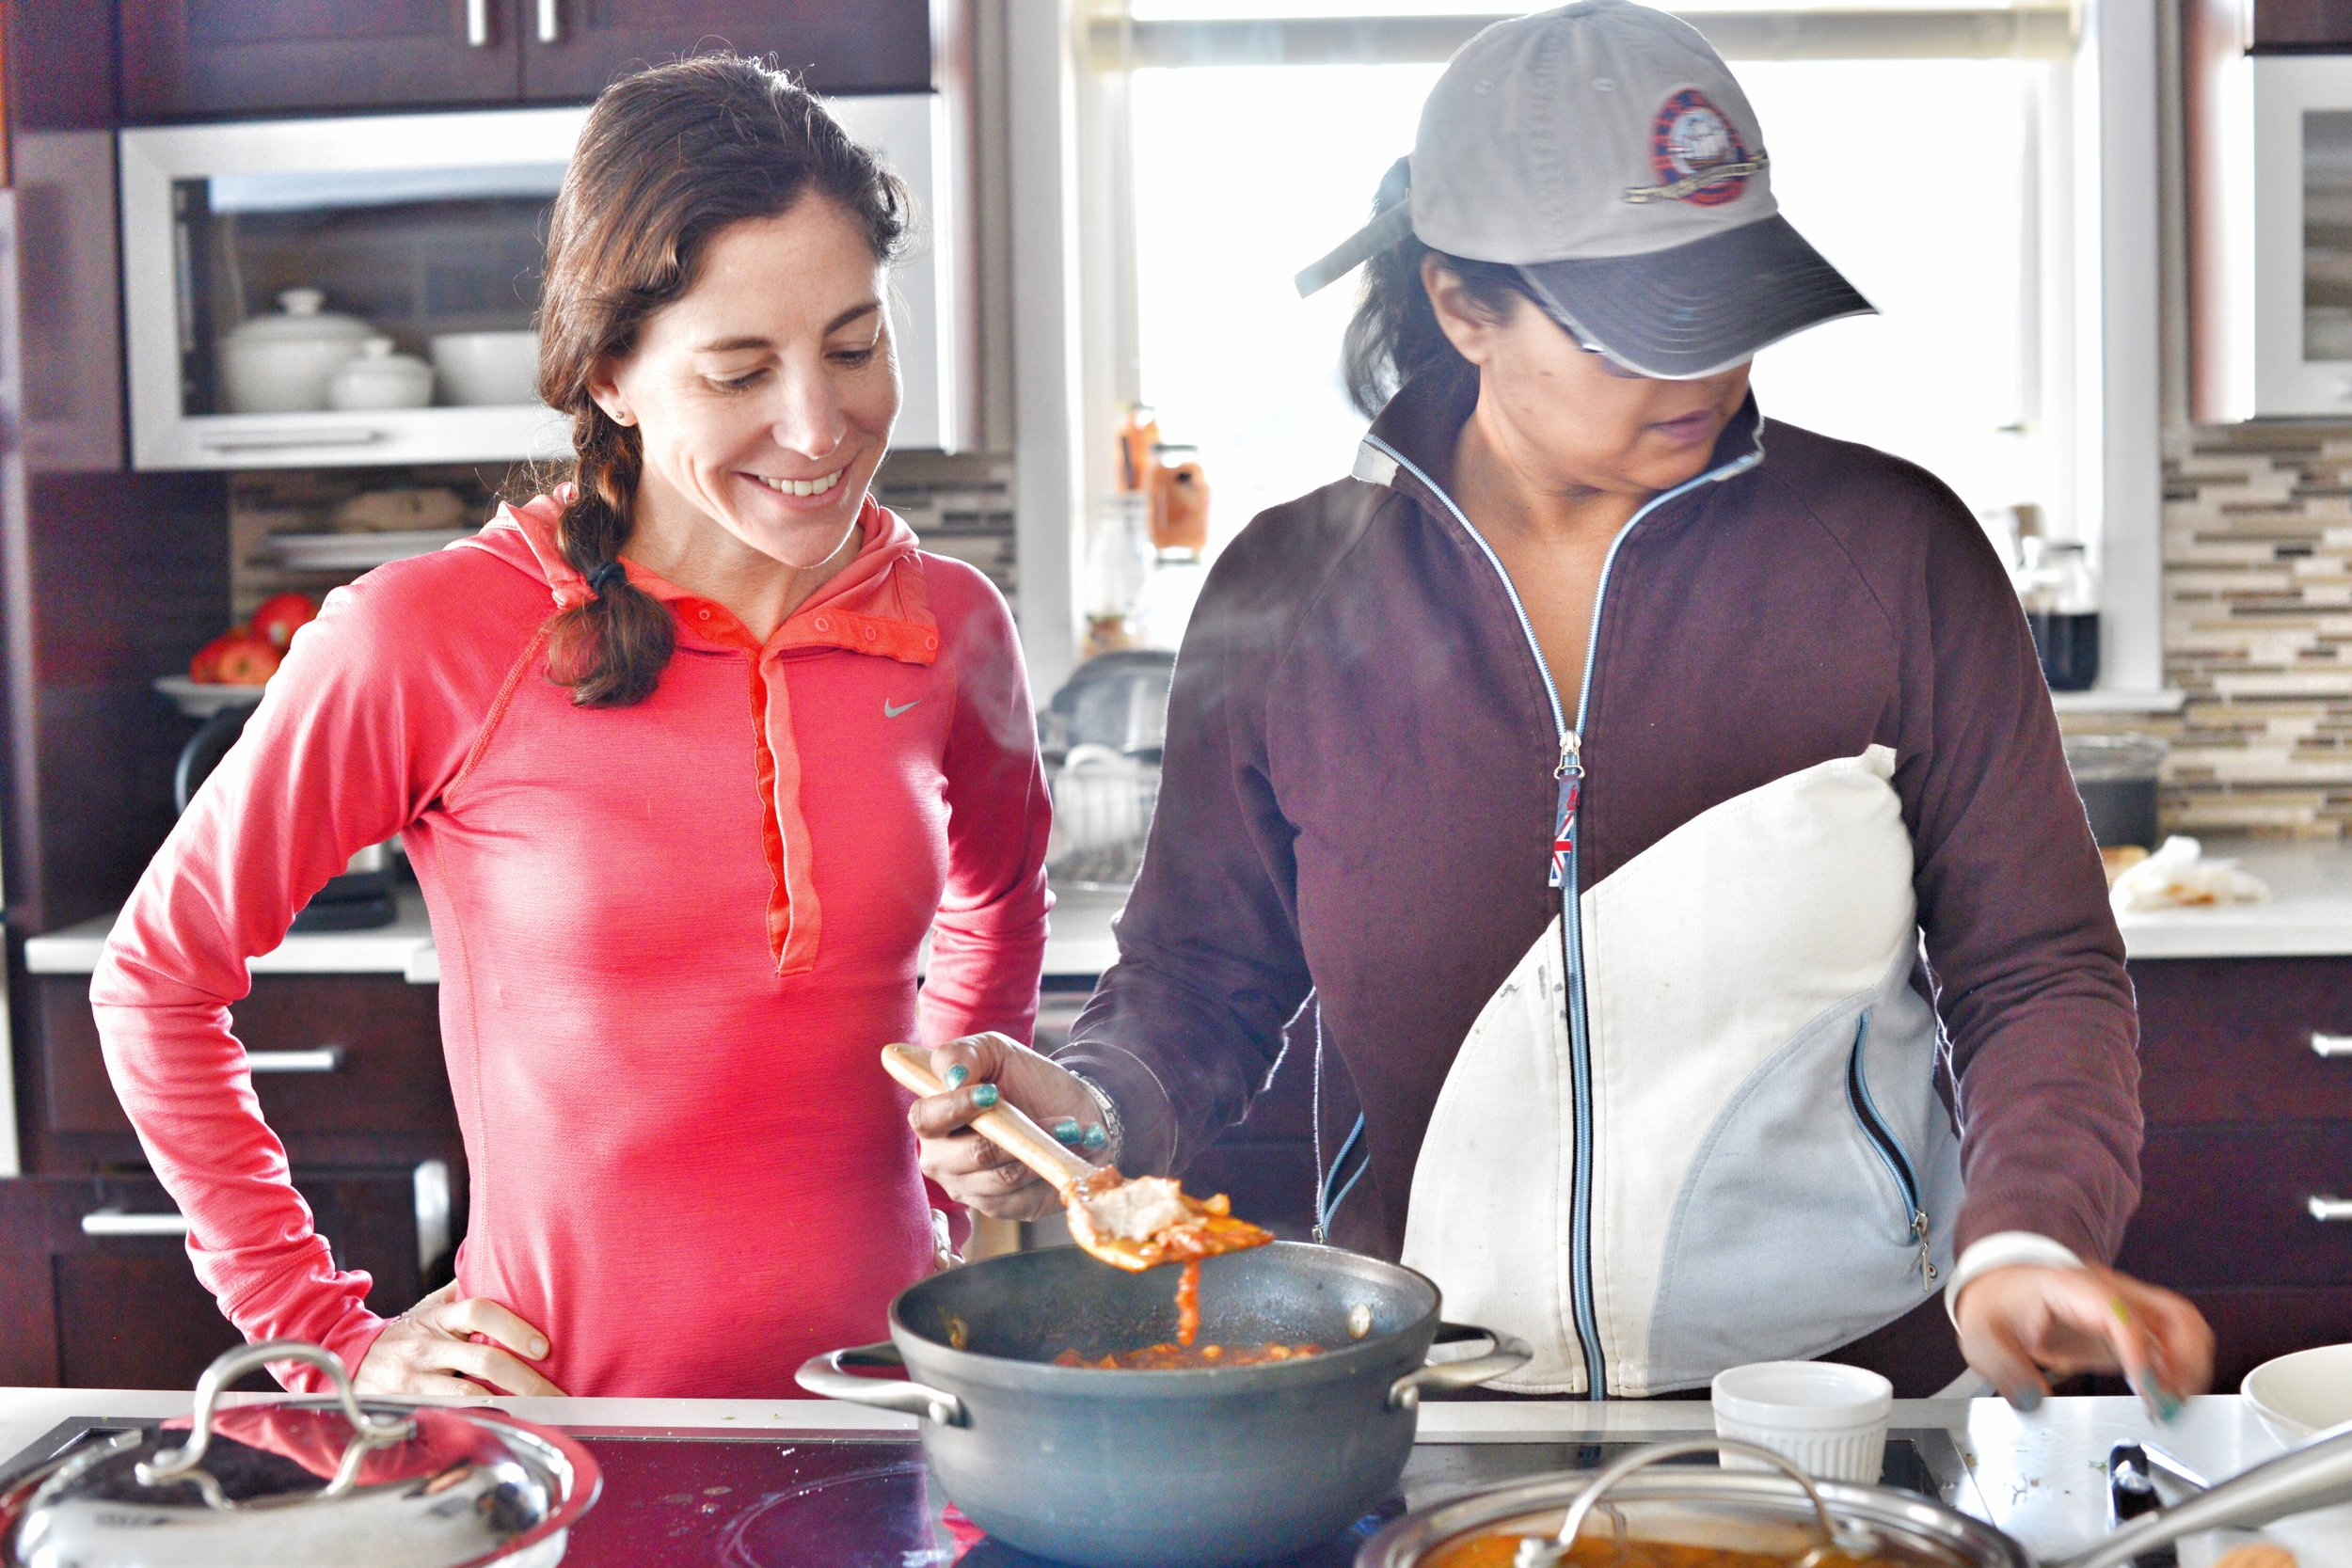 PLANNING A TRIP TO THE HUDSON VALLEY? CHECK OUT THIS COOKING SCHOOL